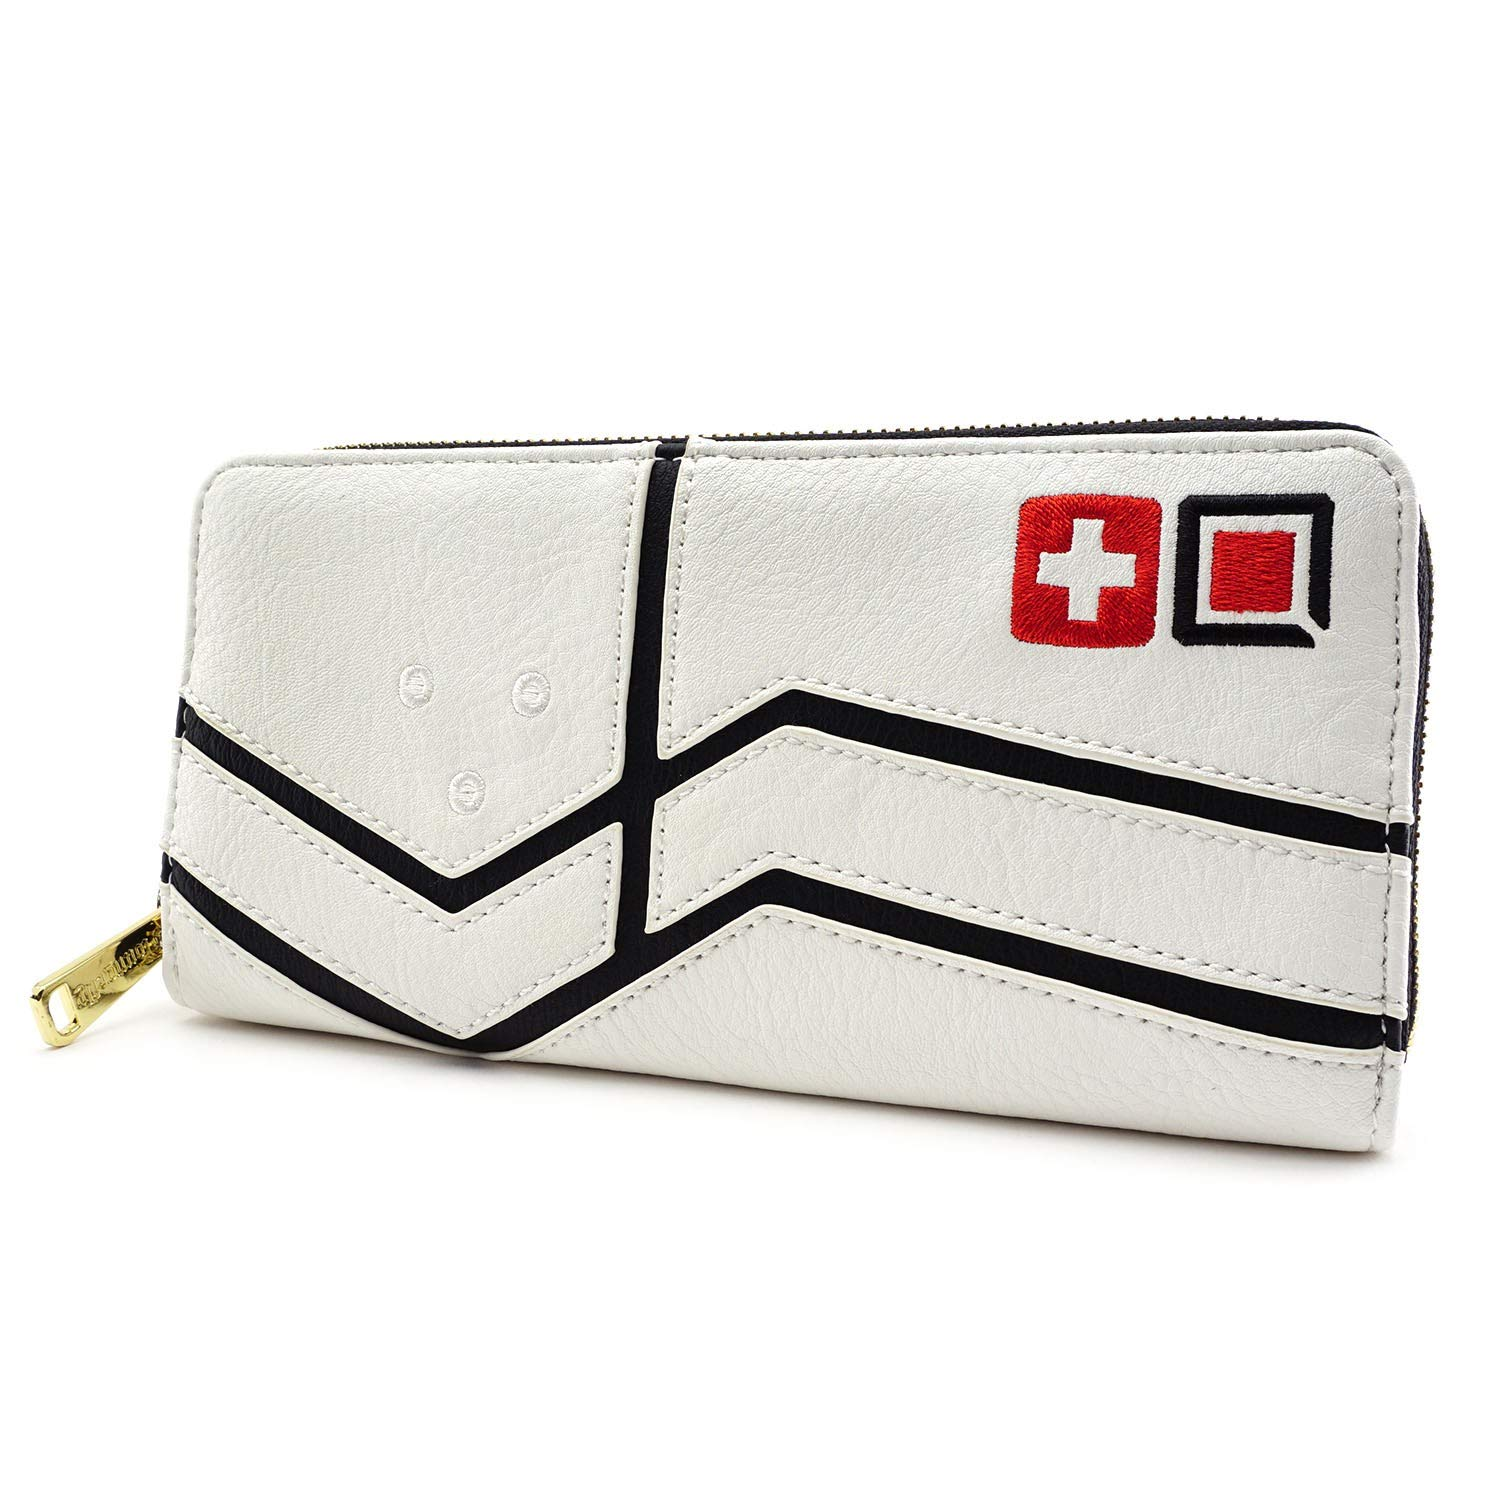 Loungefly Overwatch Mercy Faux Leather Zip around Wallet,Black,cream,Standard by Loungefly (Image #3)